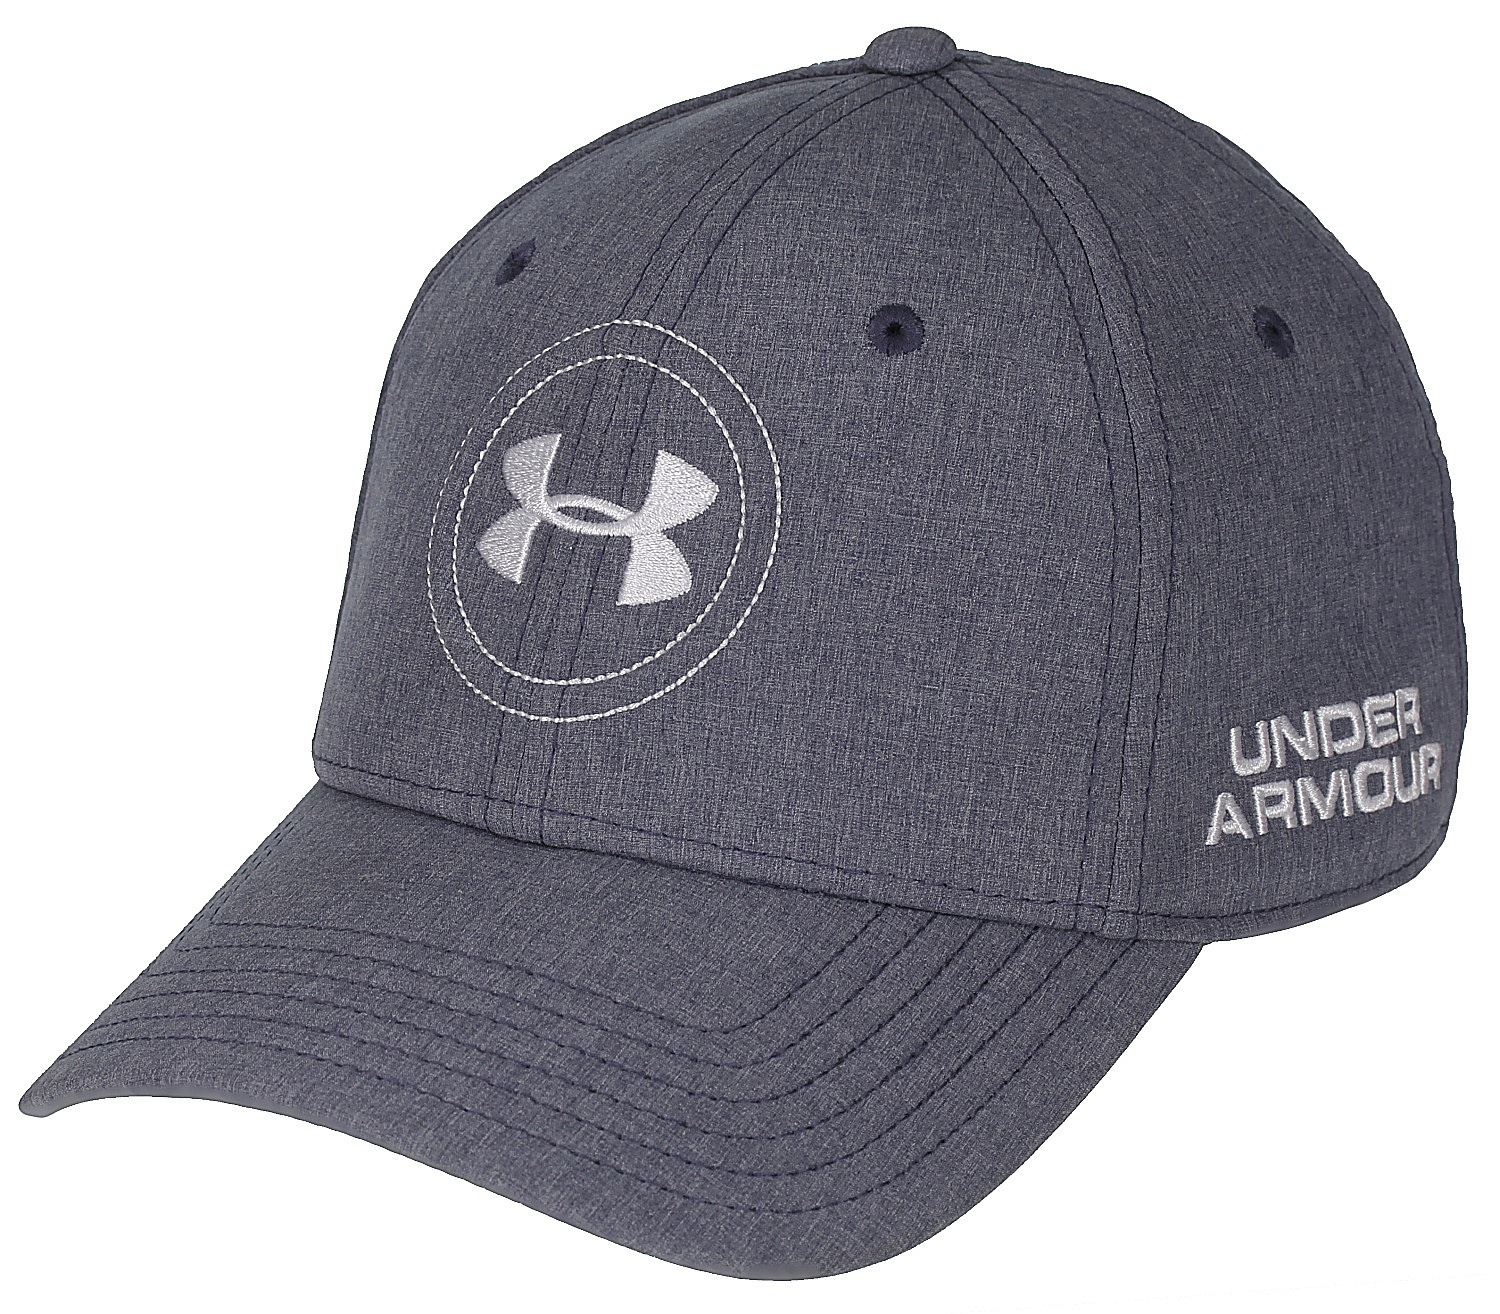 Under Armour Men's UA Deception Mid DiamondTips Baseball Cleats All-Star Game Edition Find this Pin and more on Products by underarmour. These baseball cleats are perfect for making sharp turns on third base to make it home after a home run.